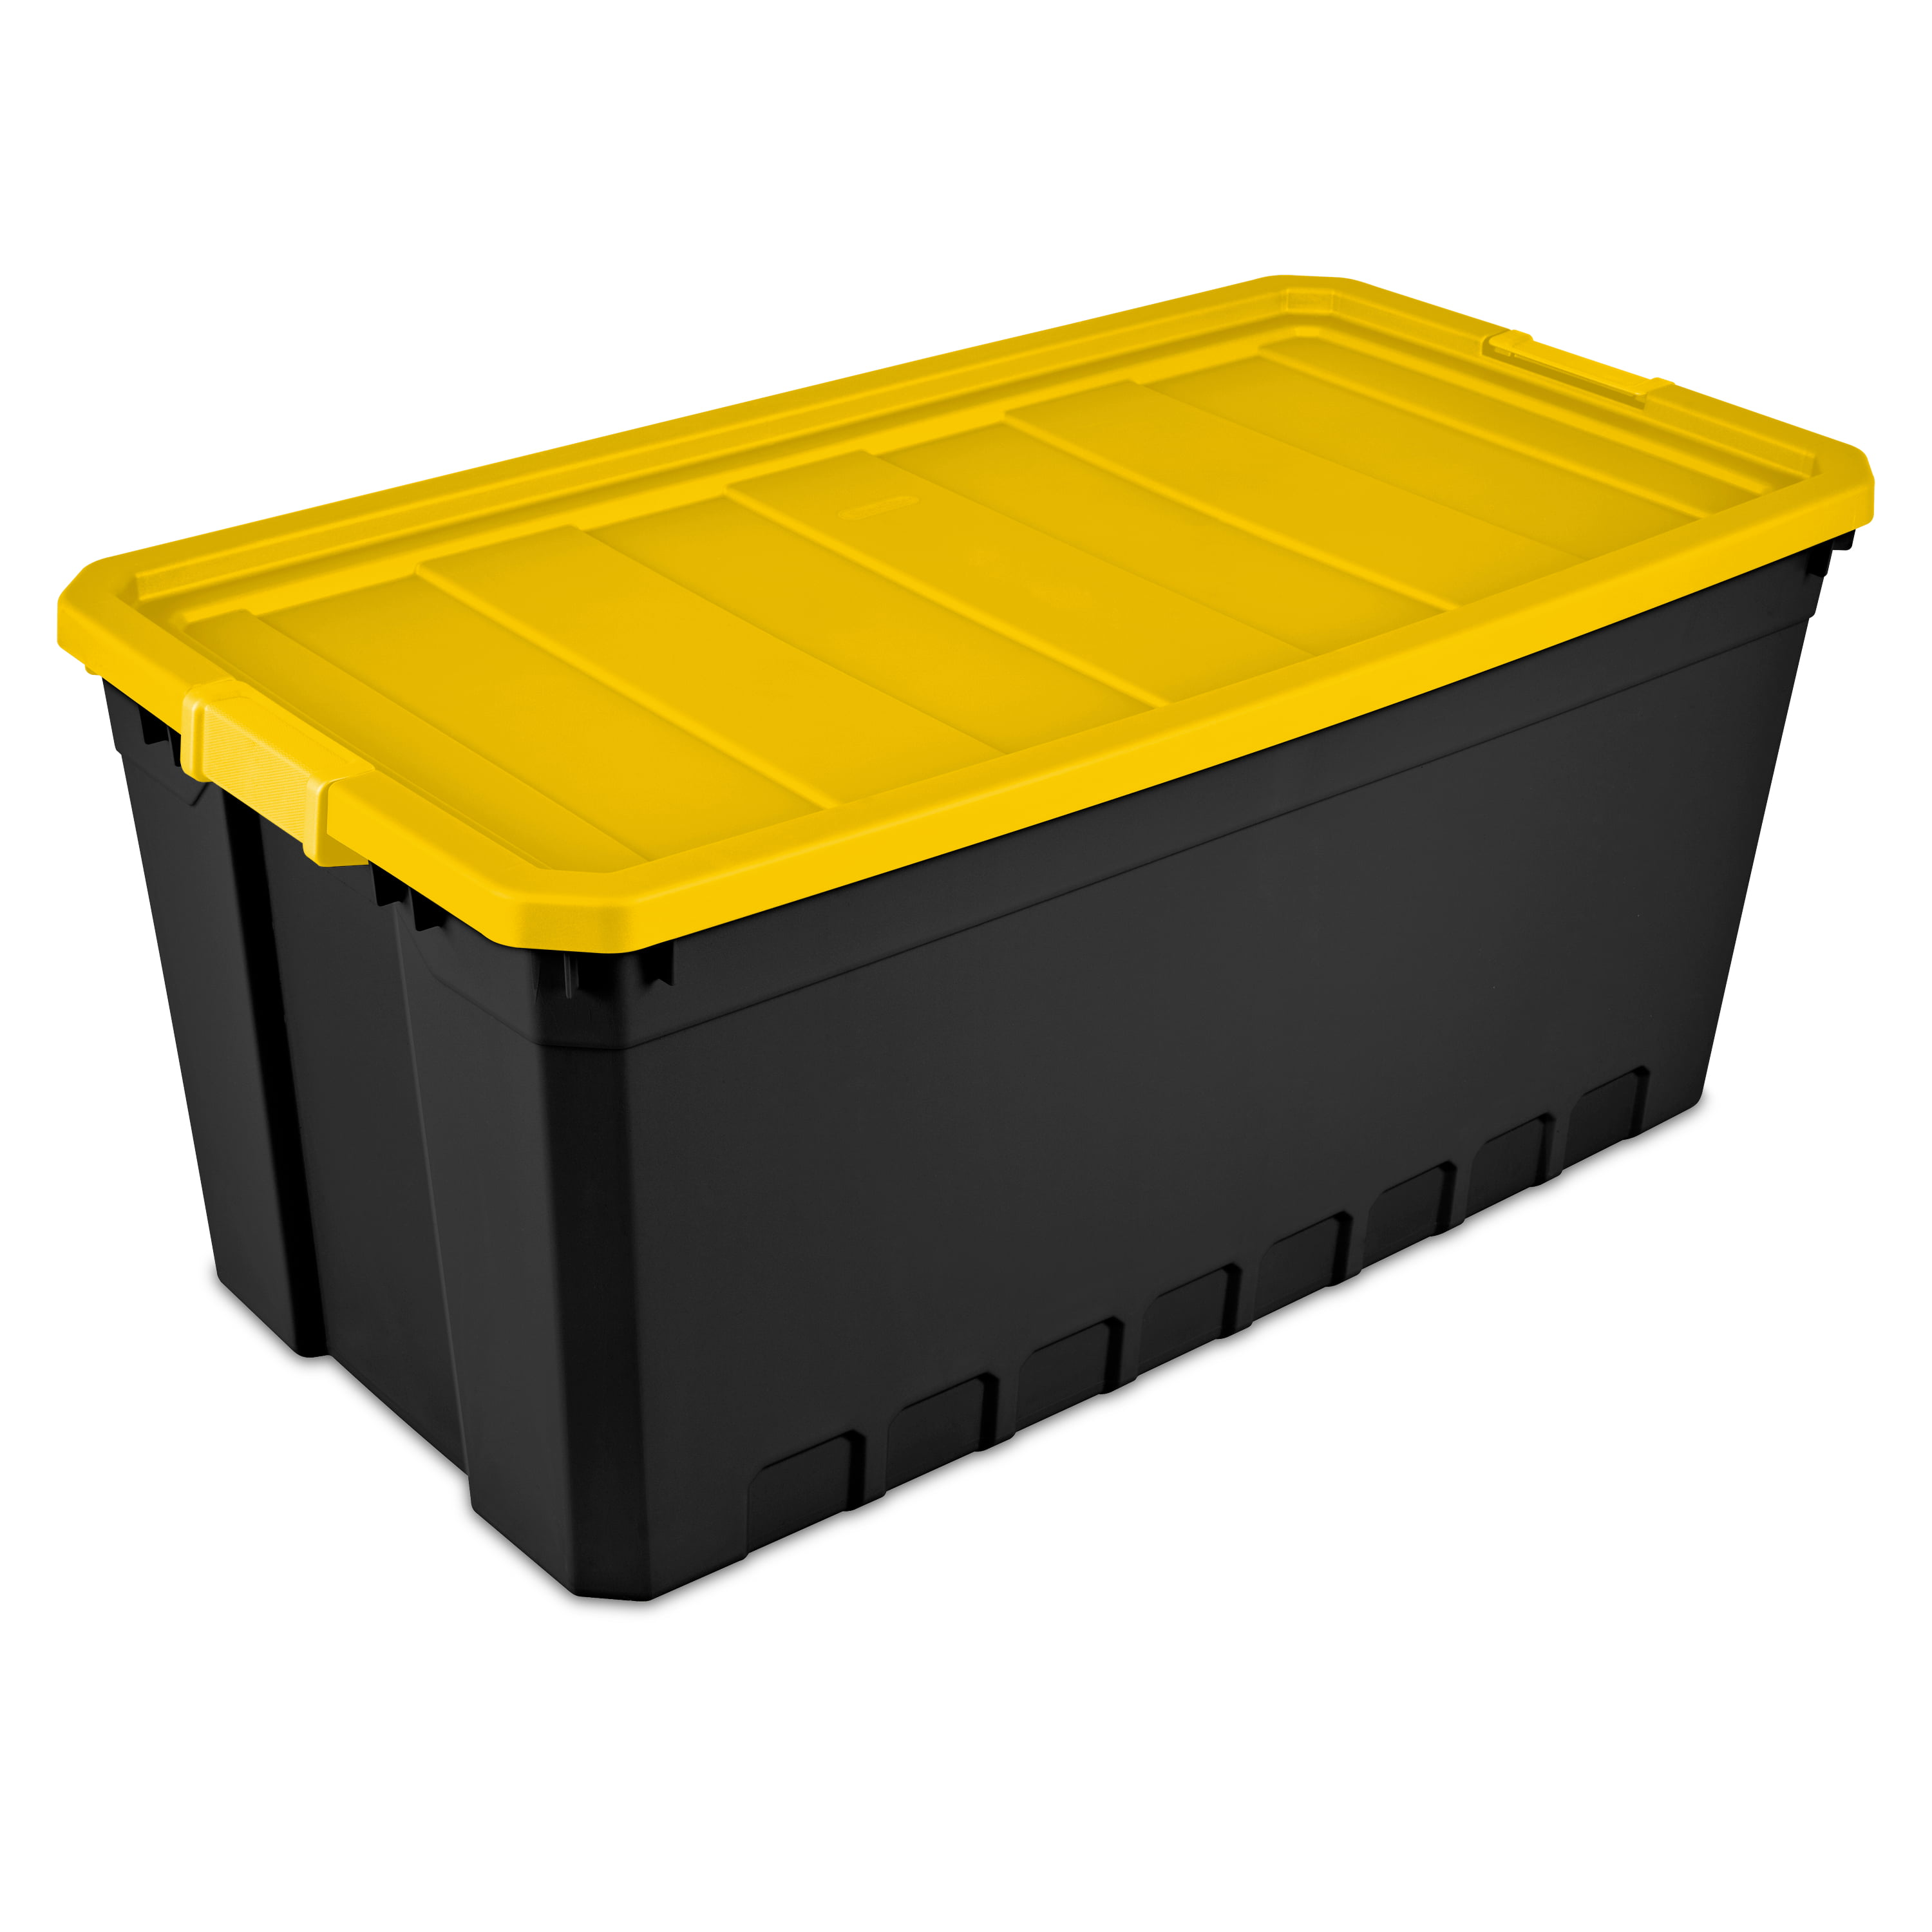 Sterilite 50 Gal Industrial Tote, Yellow Tote